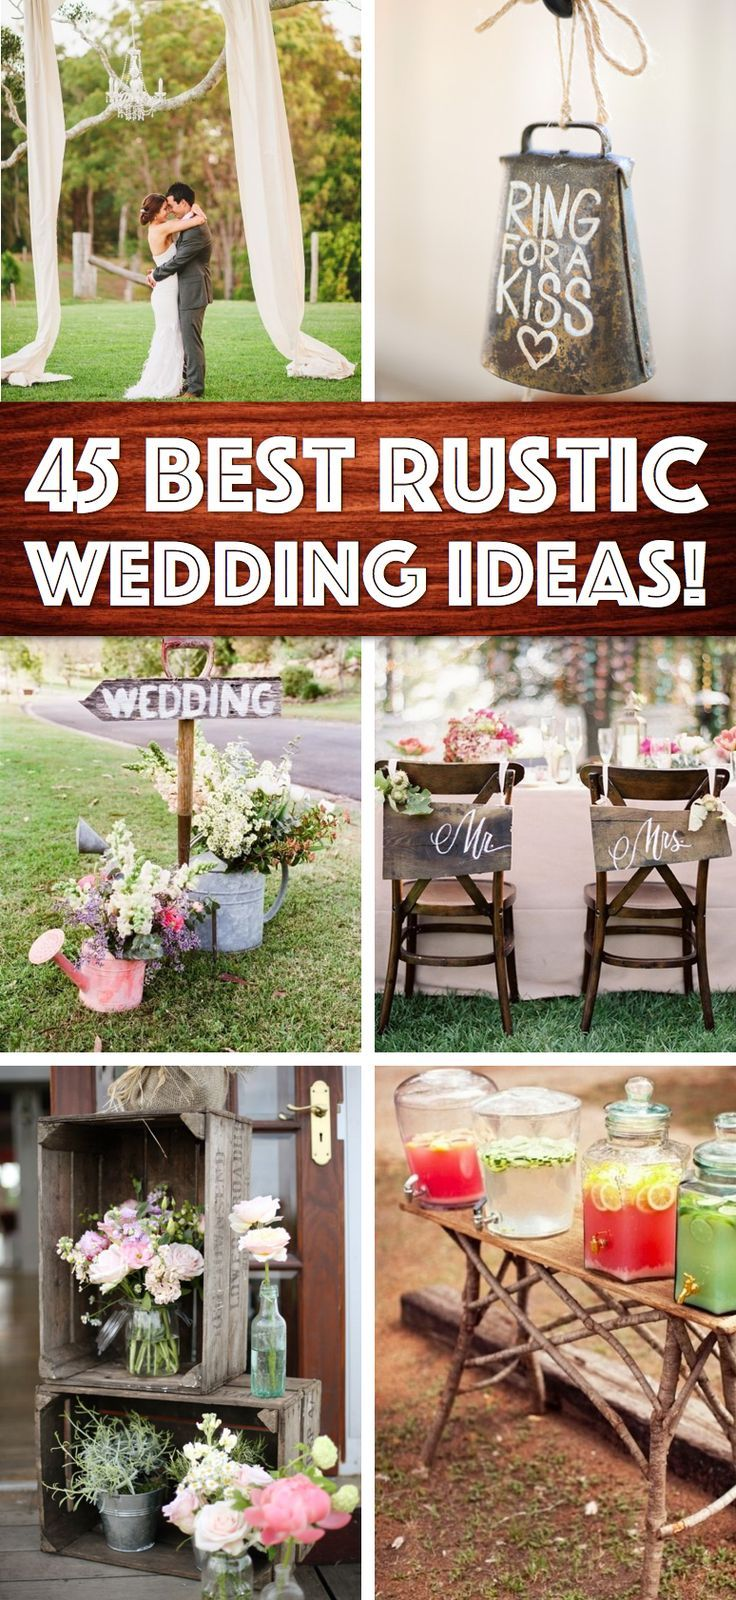 Shine on your wedding day with these breathtaking rustic wedding